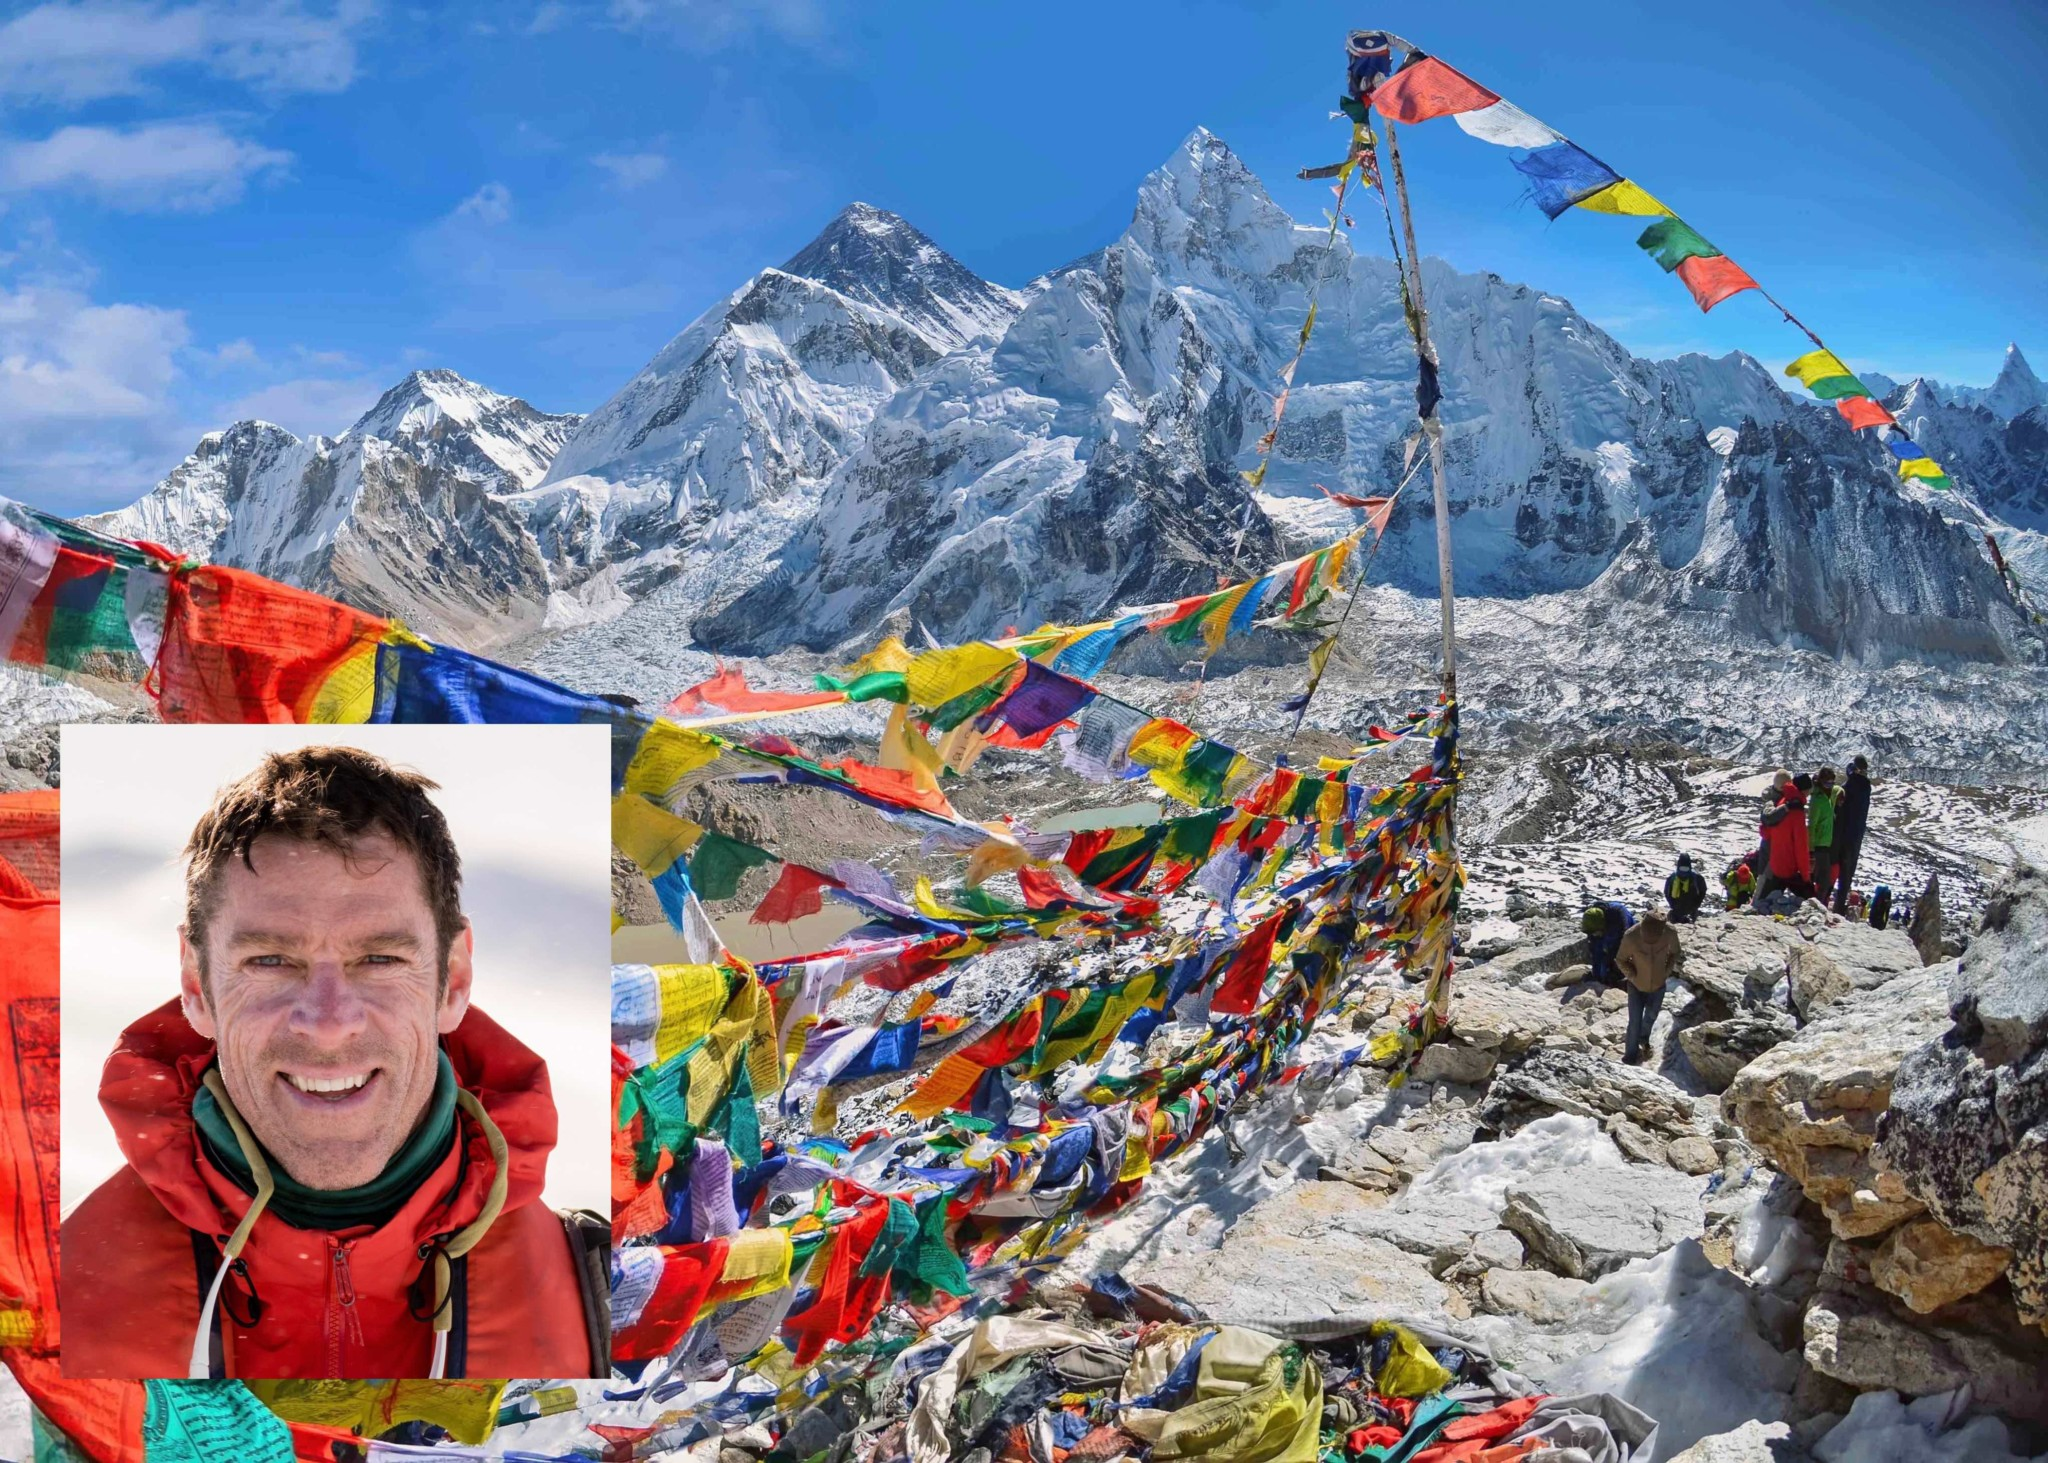 Everest Base Camp, Kala Pattar & the Khumbu Icefall